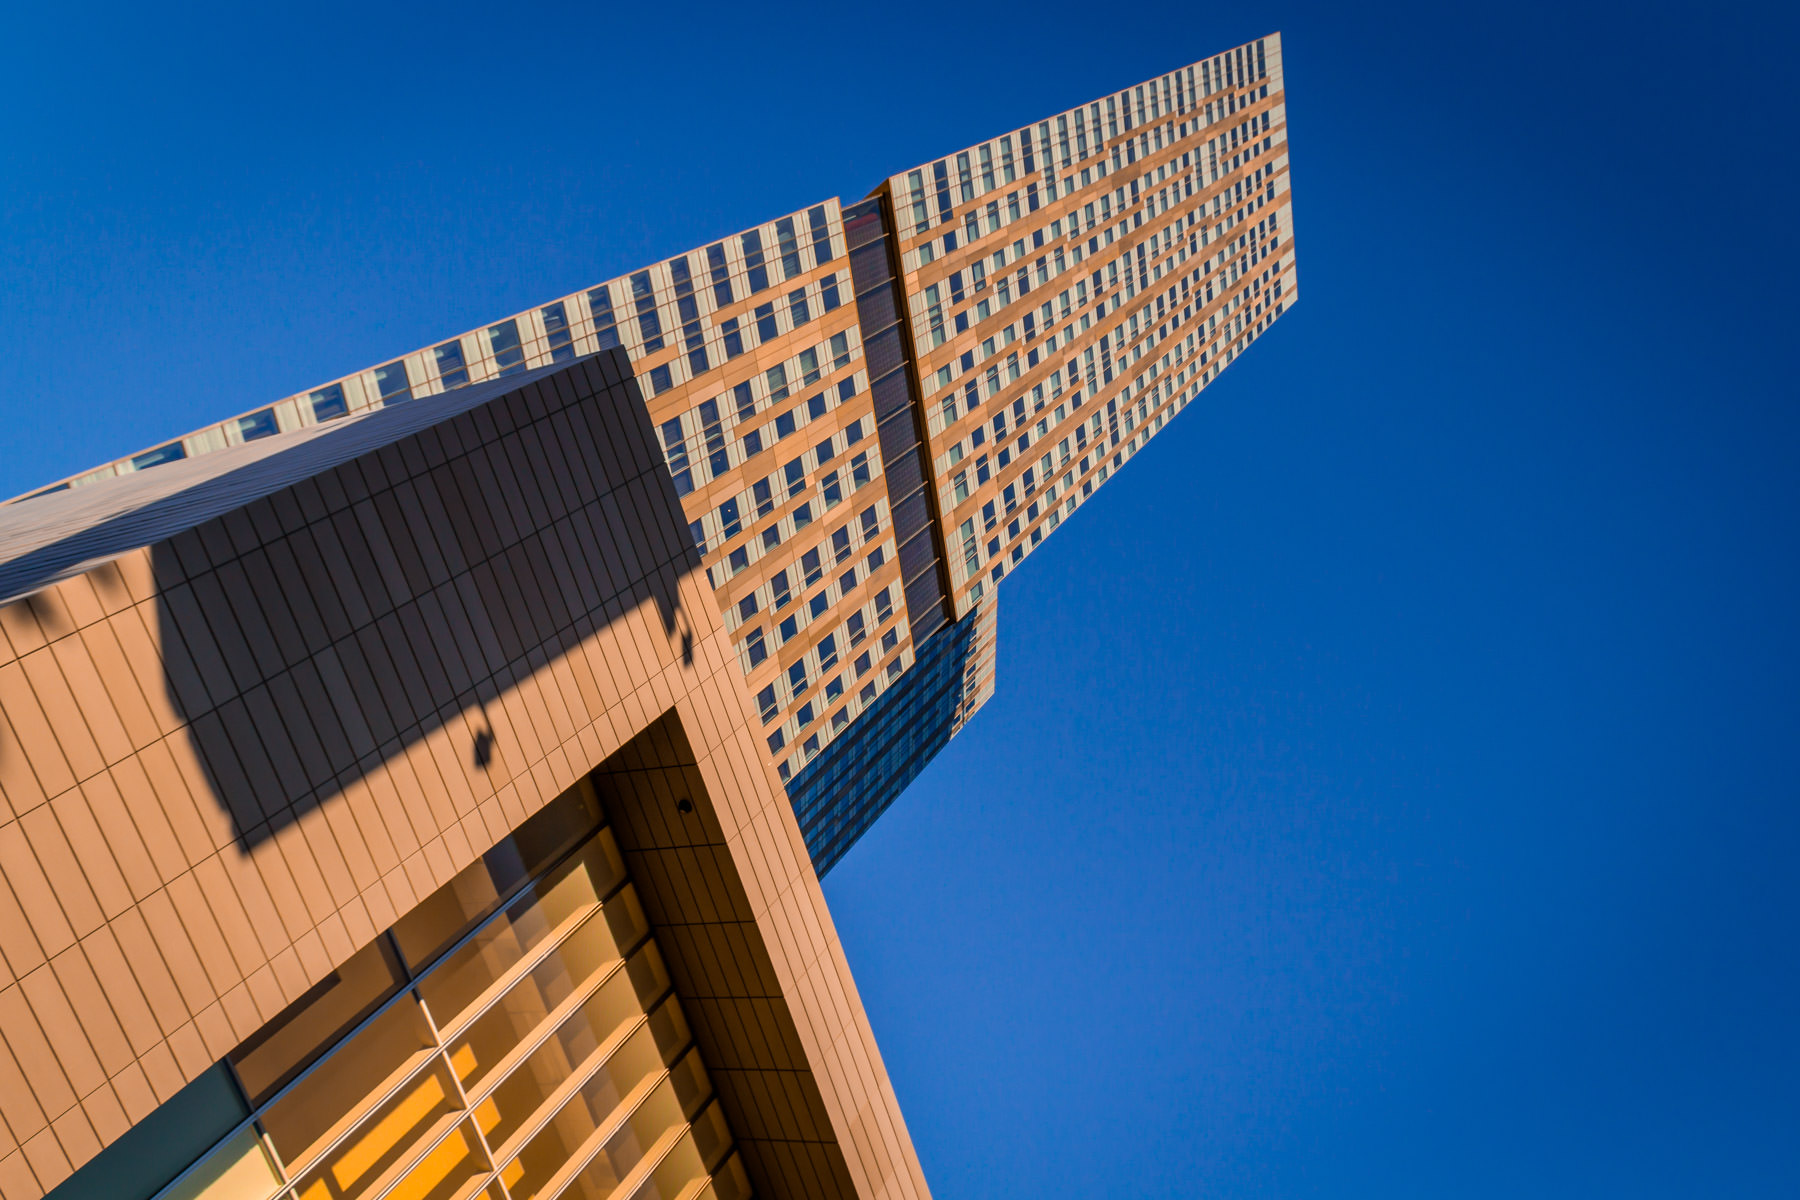 The 56-story Mandarin Oriental rises into the Nevada desert sky at CityCenter, Las Vegas.